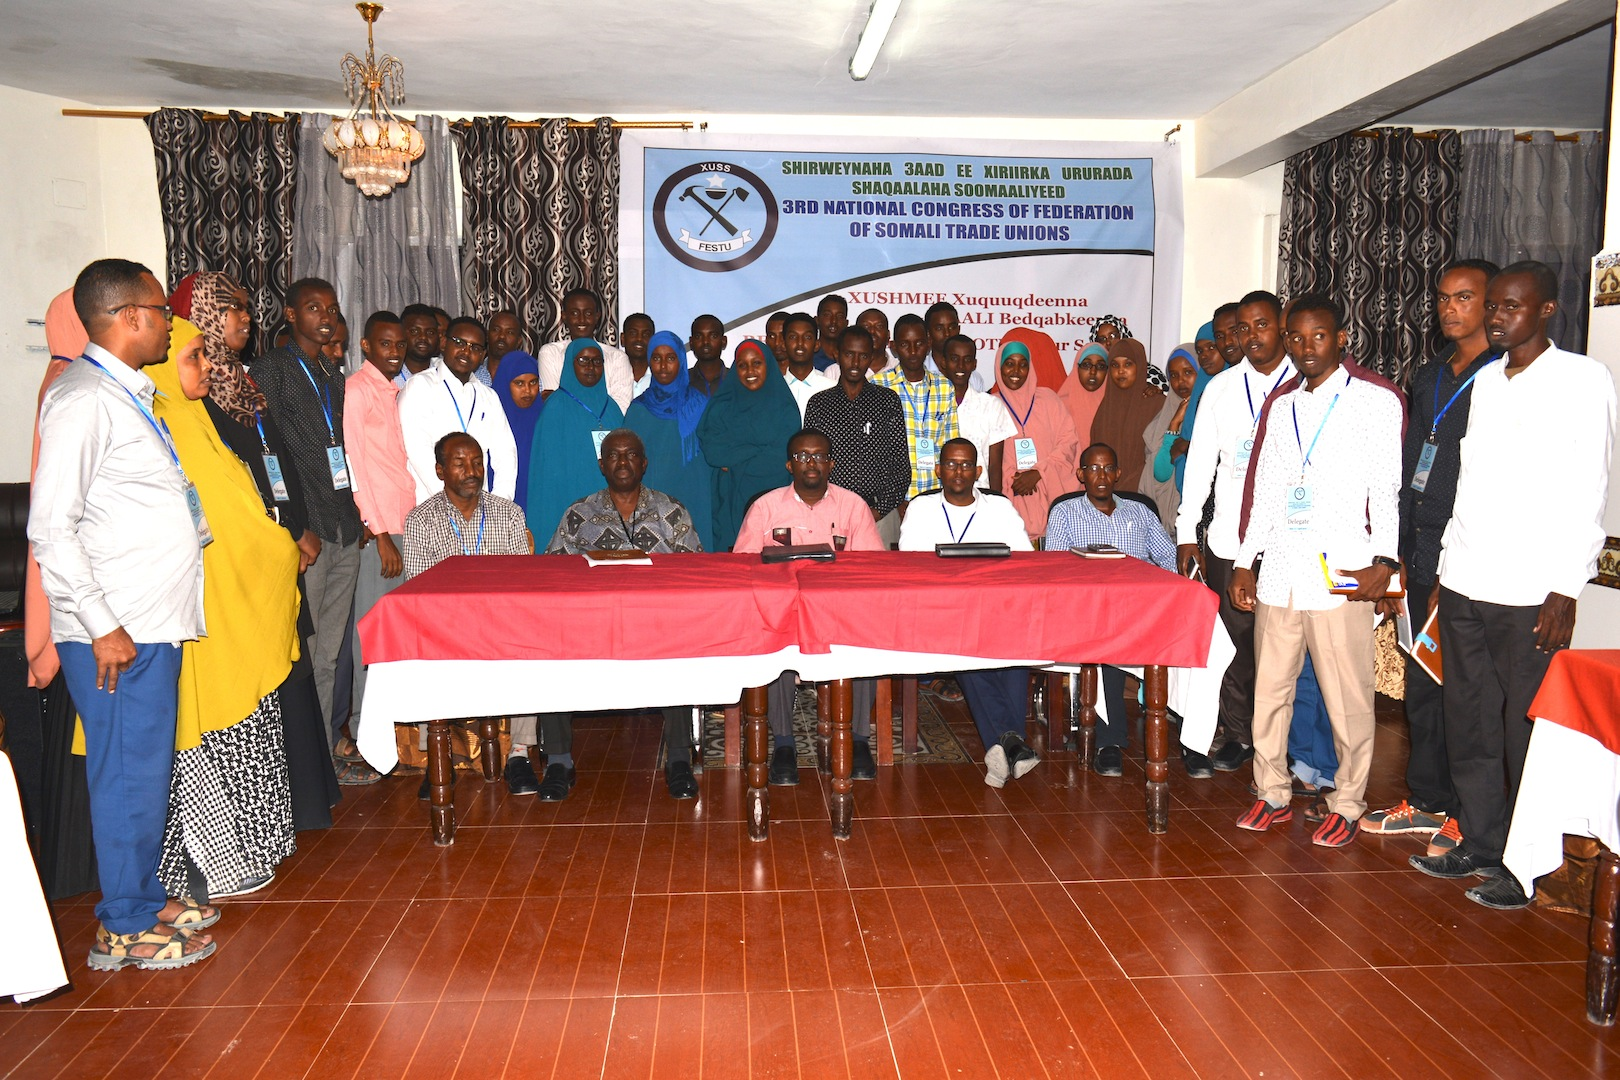 Somali Trade Unions Commemorate International Public Service Day